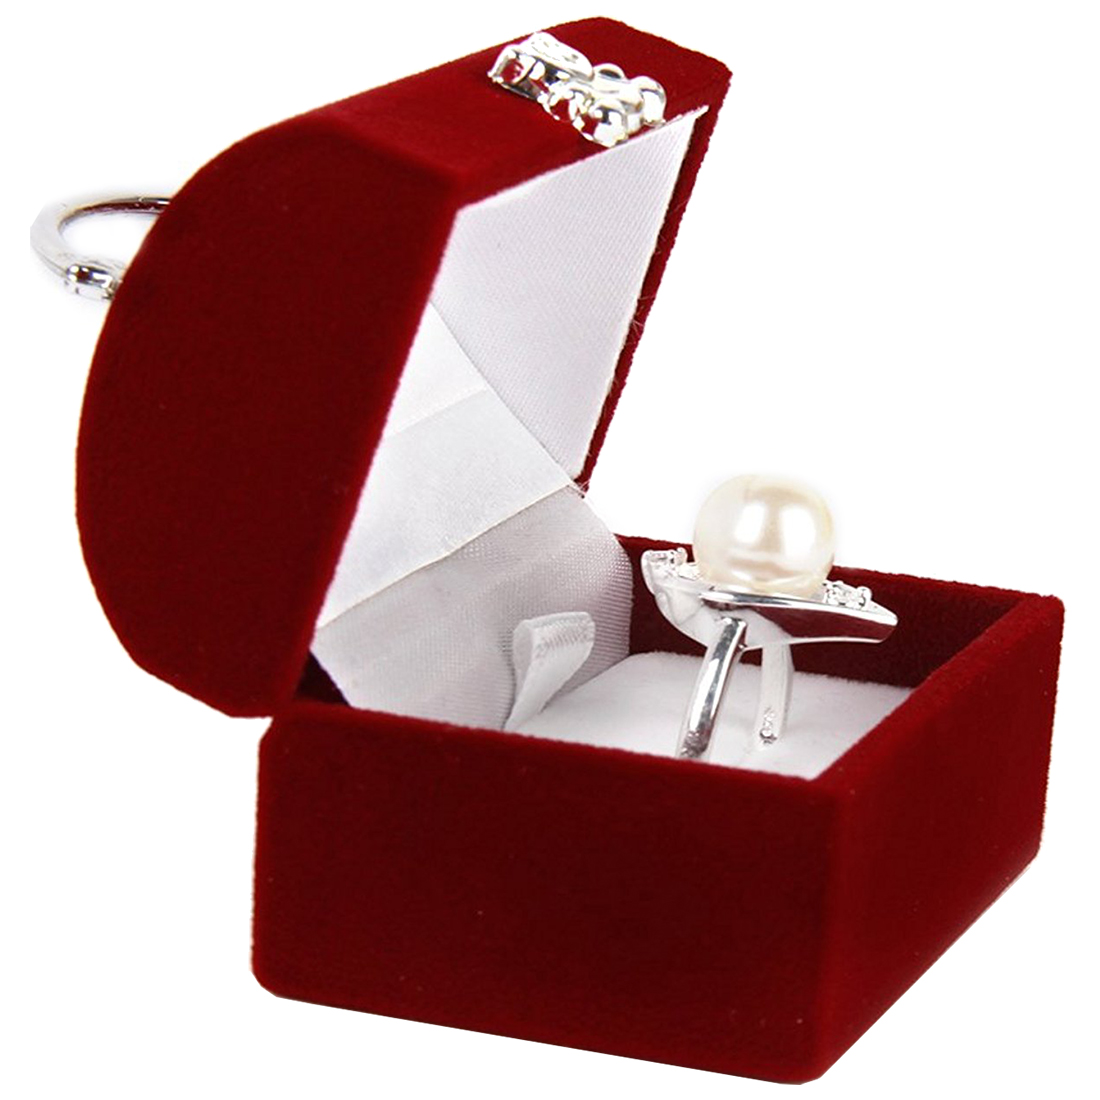 jewelery box display case for ring earrings box organizer